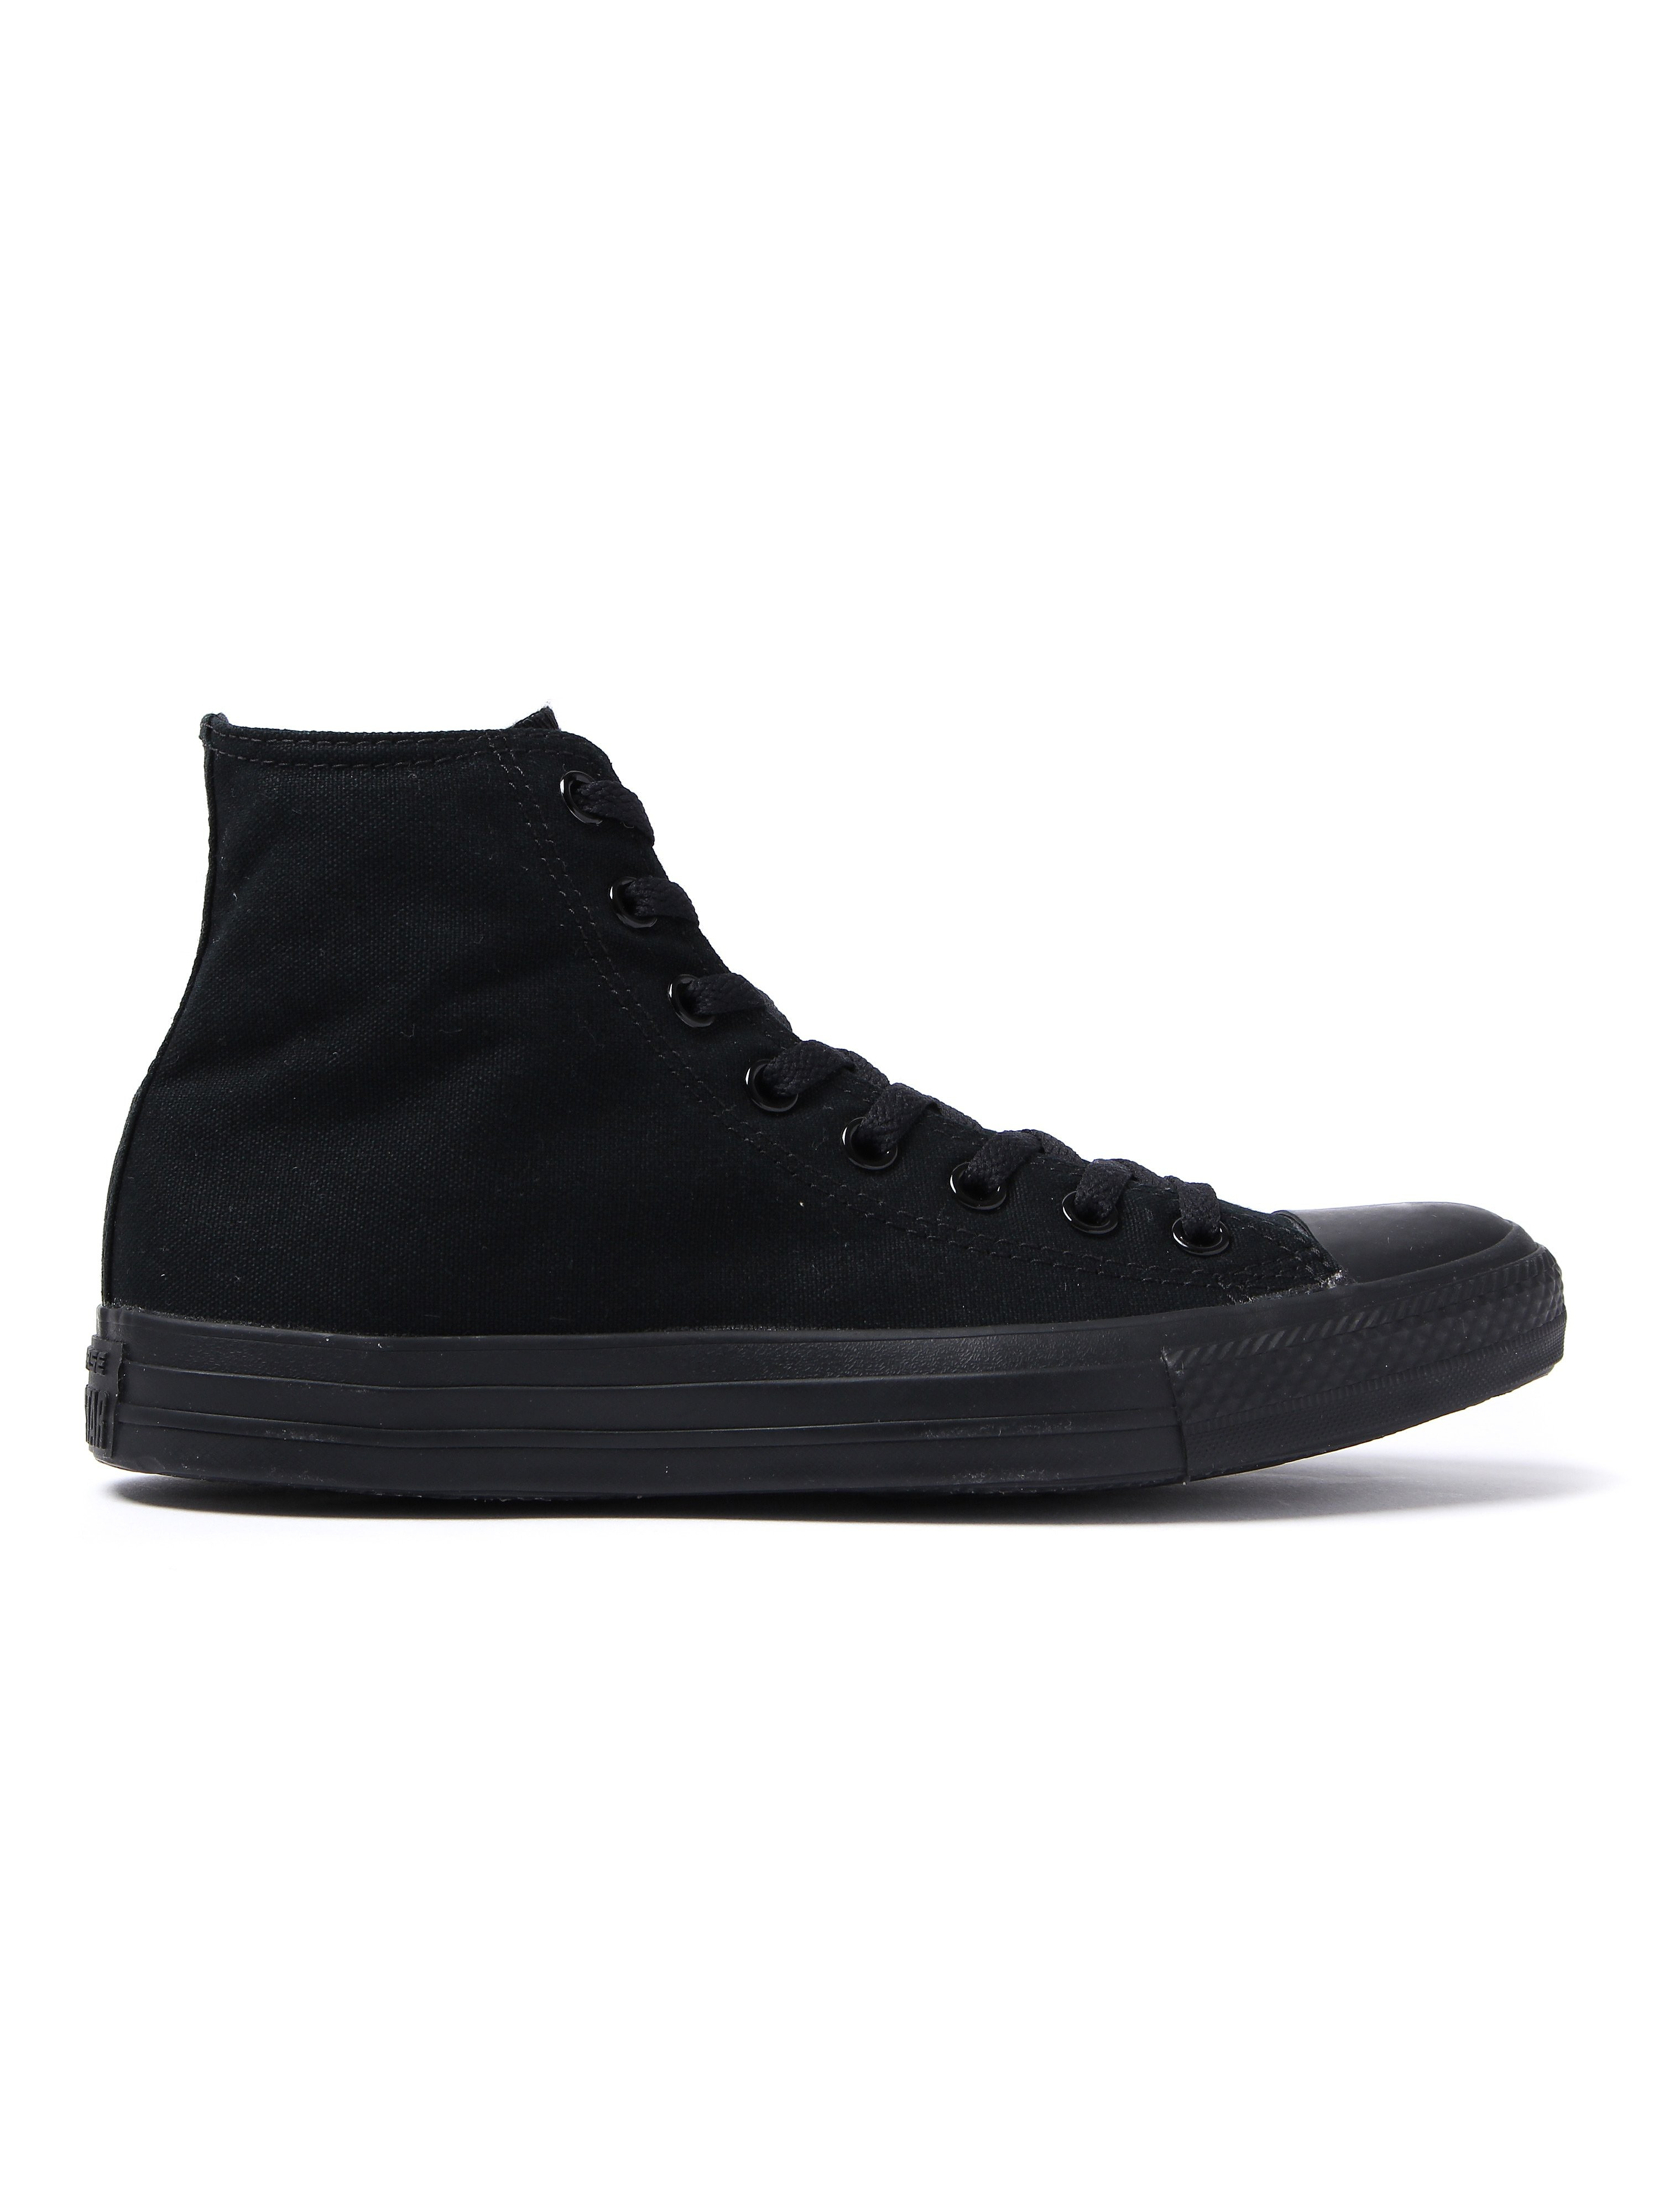 Converse Unisex Chuck Taylor All Star High Top - Black Mono